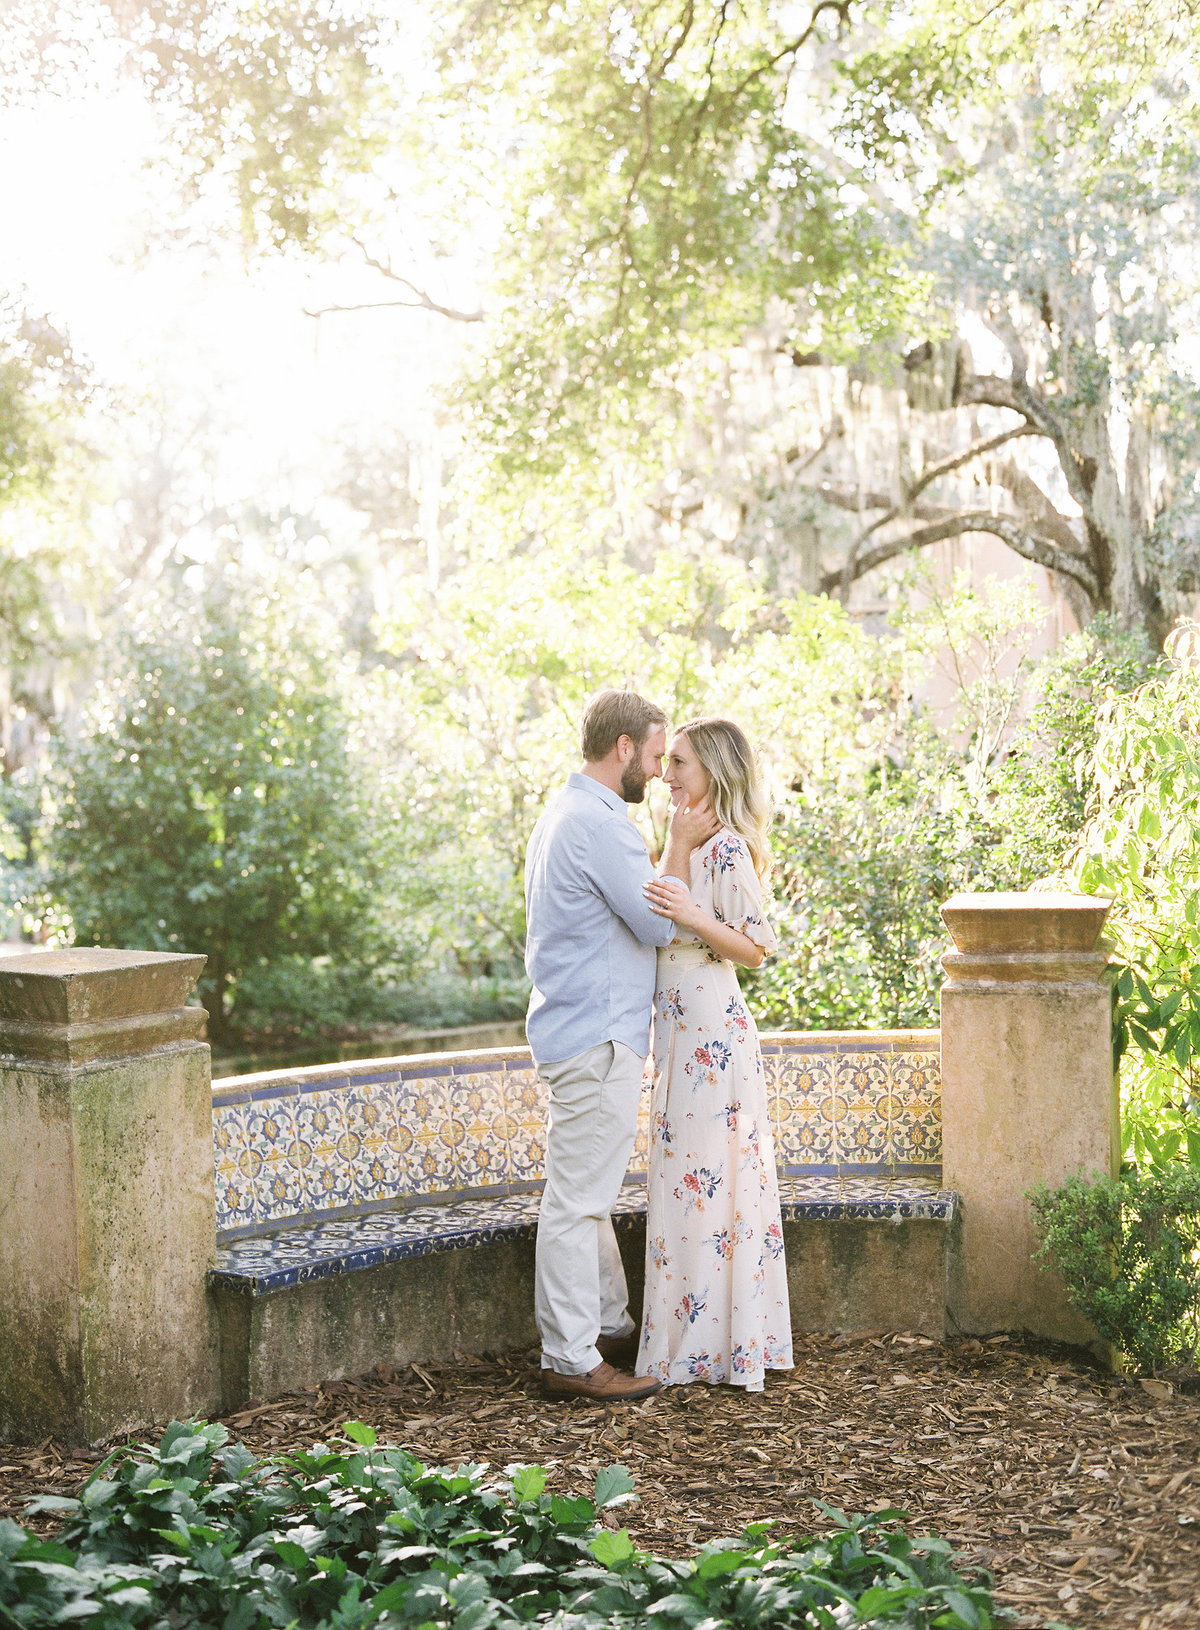 Bok_Tower_Garden_Film_Fine_Art_Engagement_Session-28